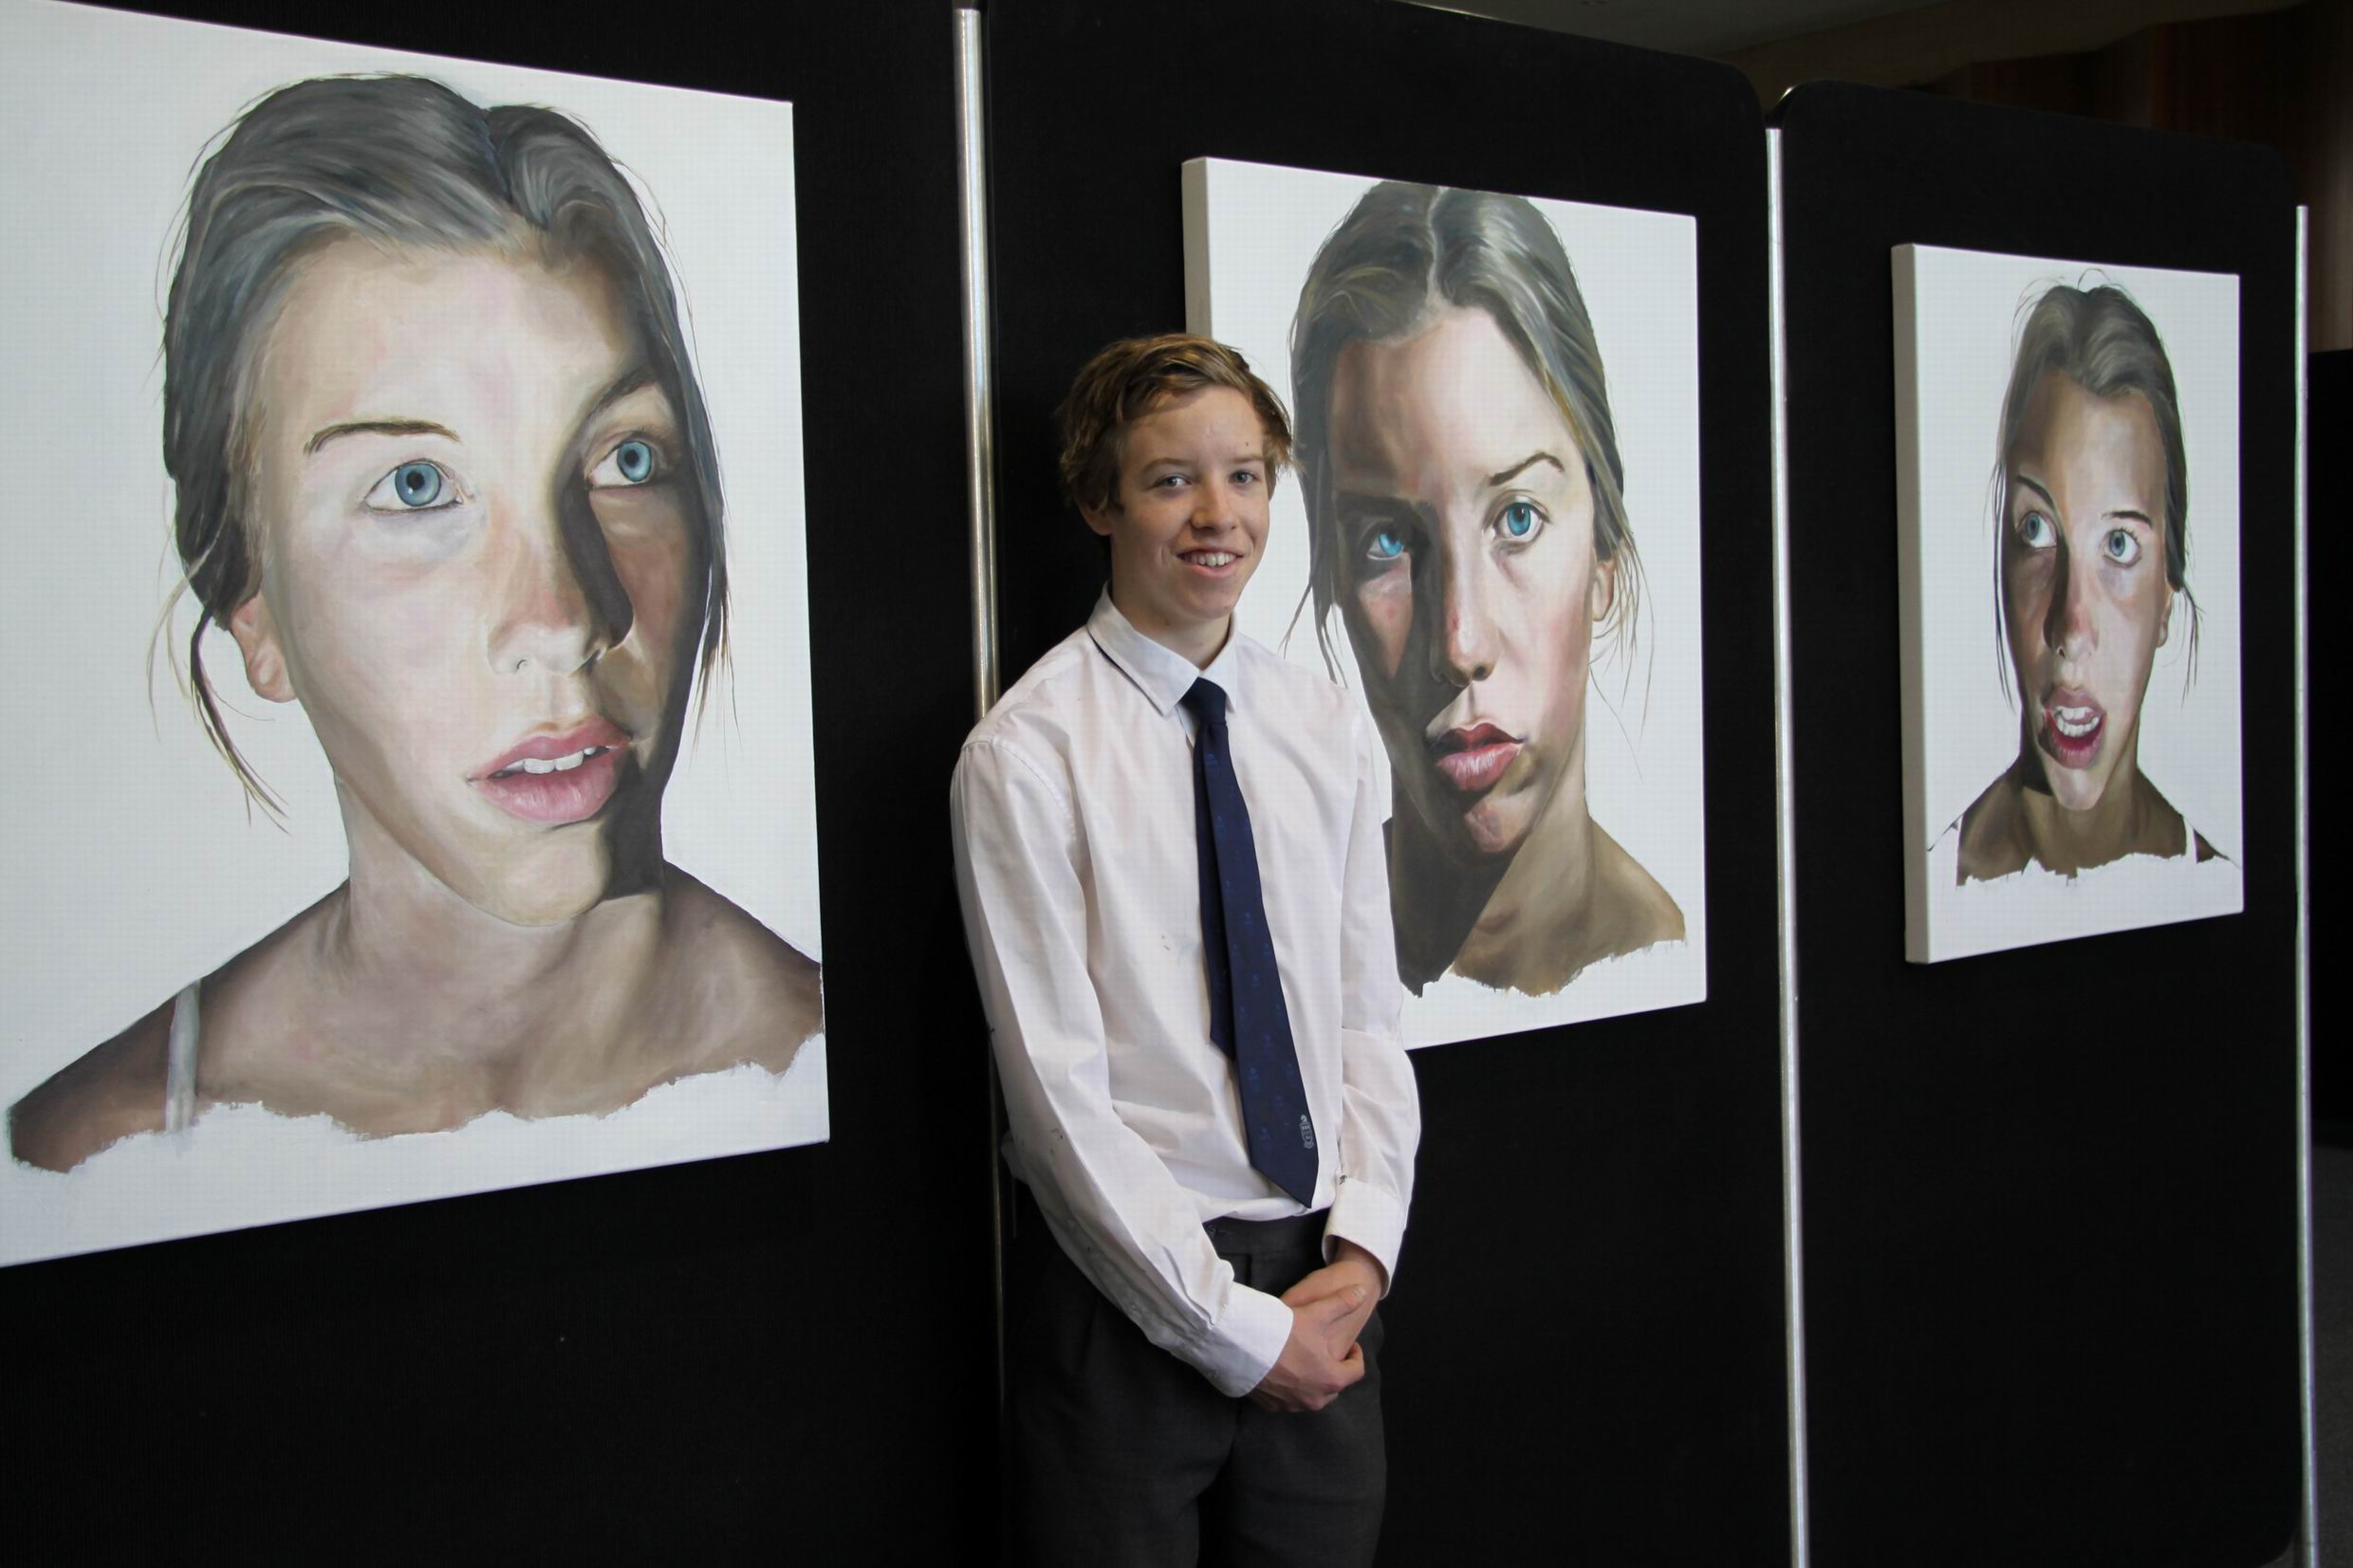 Jared Hill with his portrait.